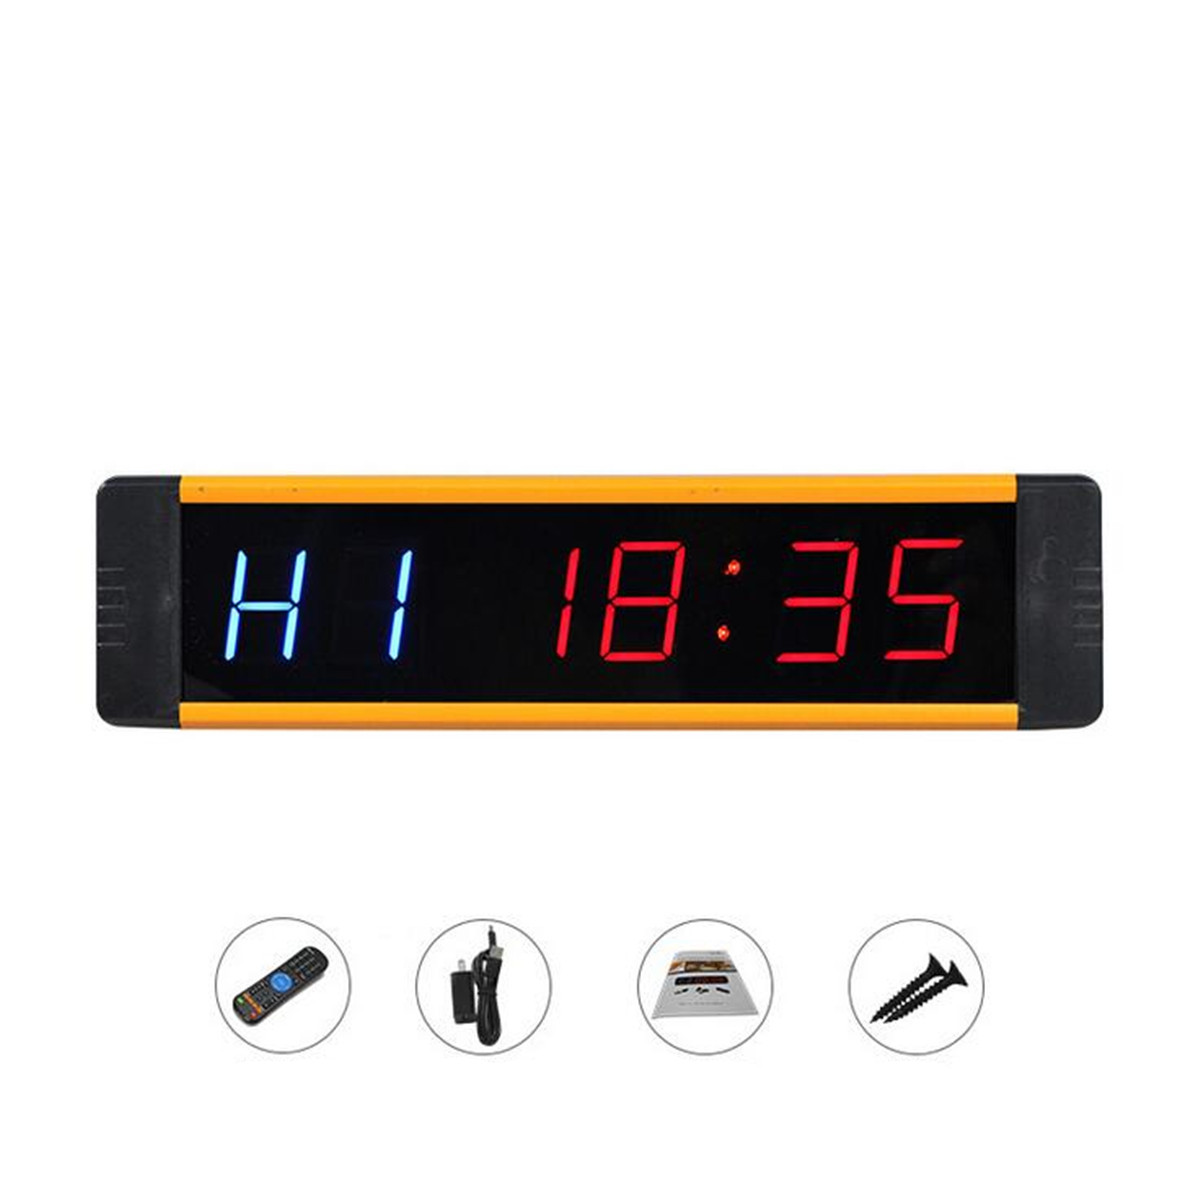 LED Display Electronic Clock Stopwatch Interval Timer Wall Clock with Remote Controller for Gym Fitness Training